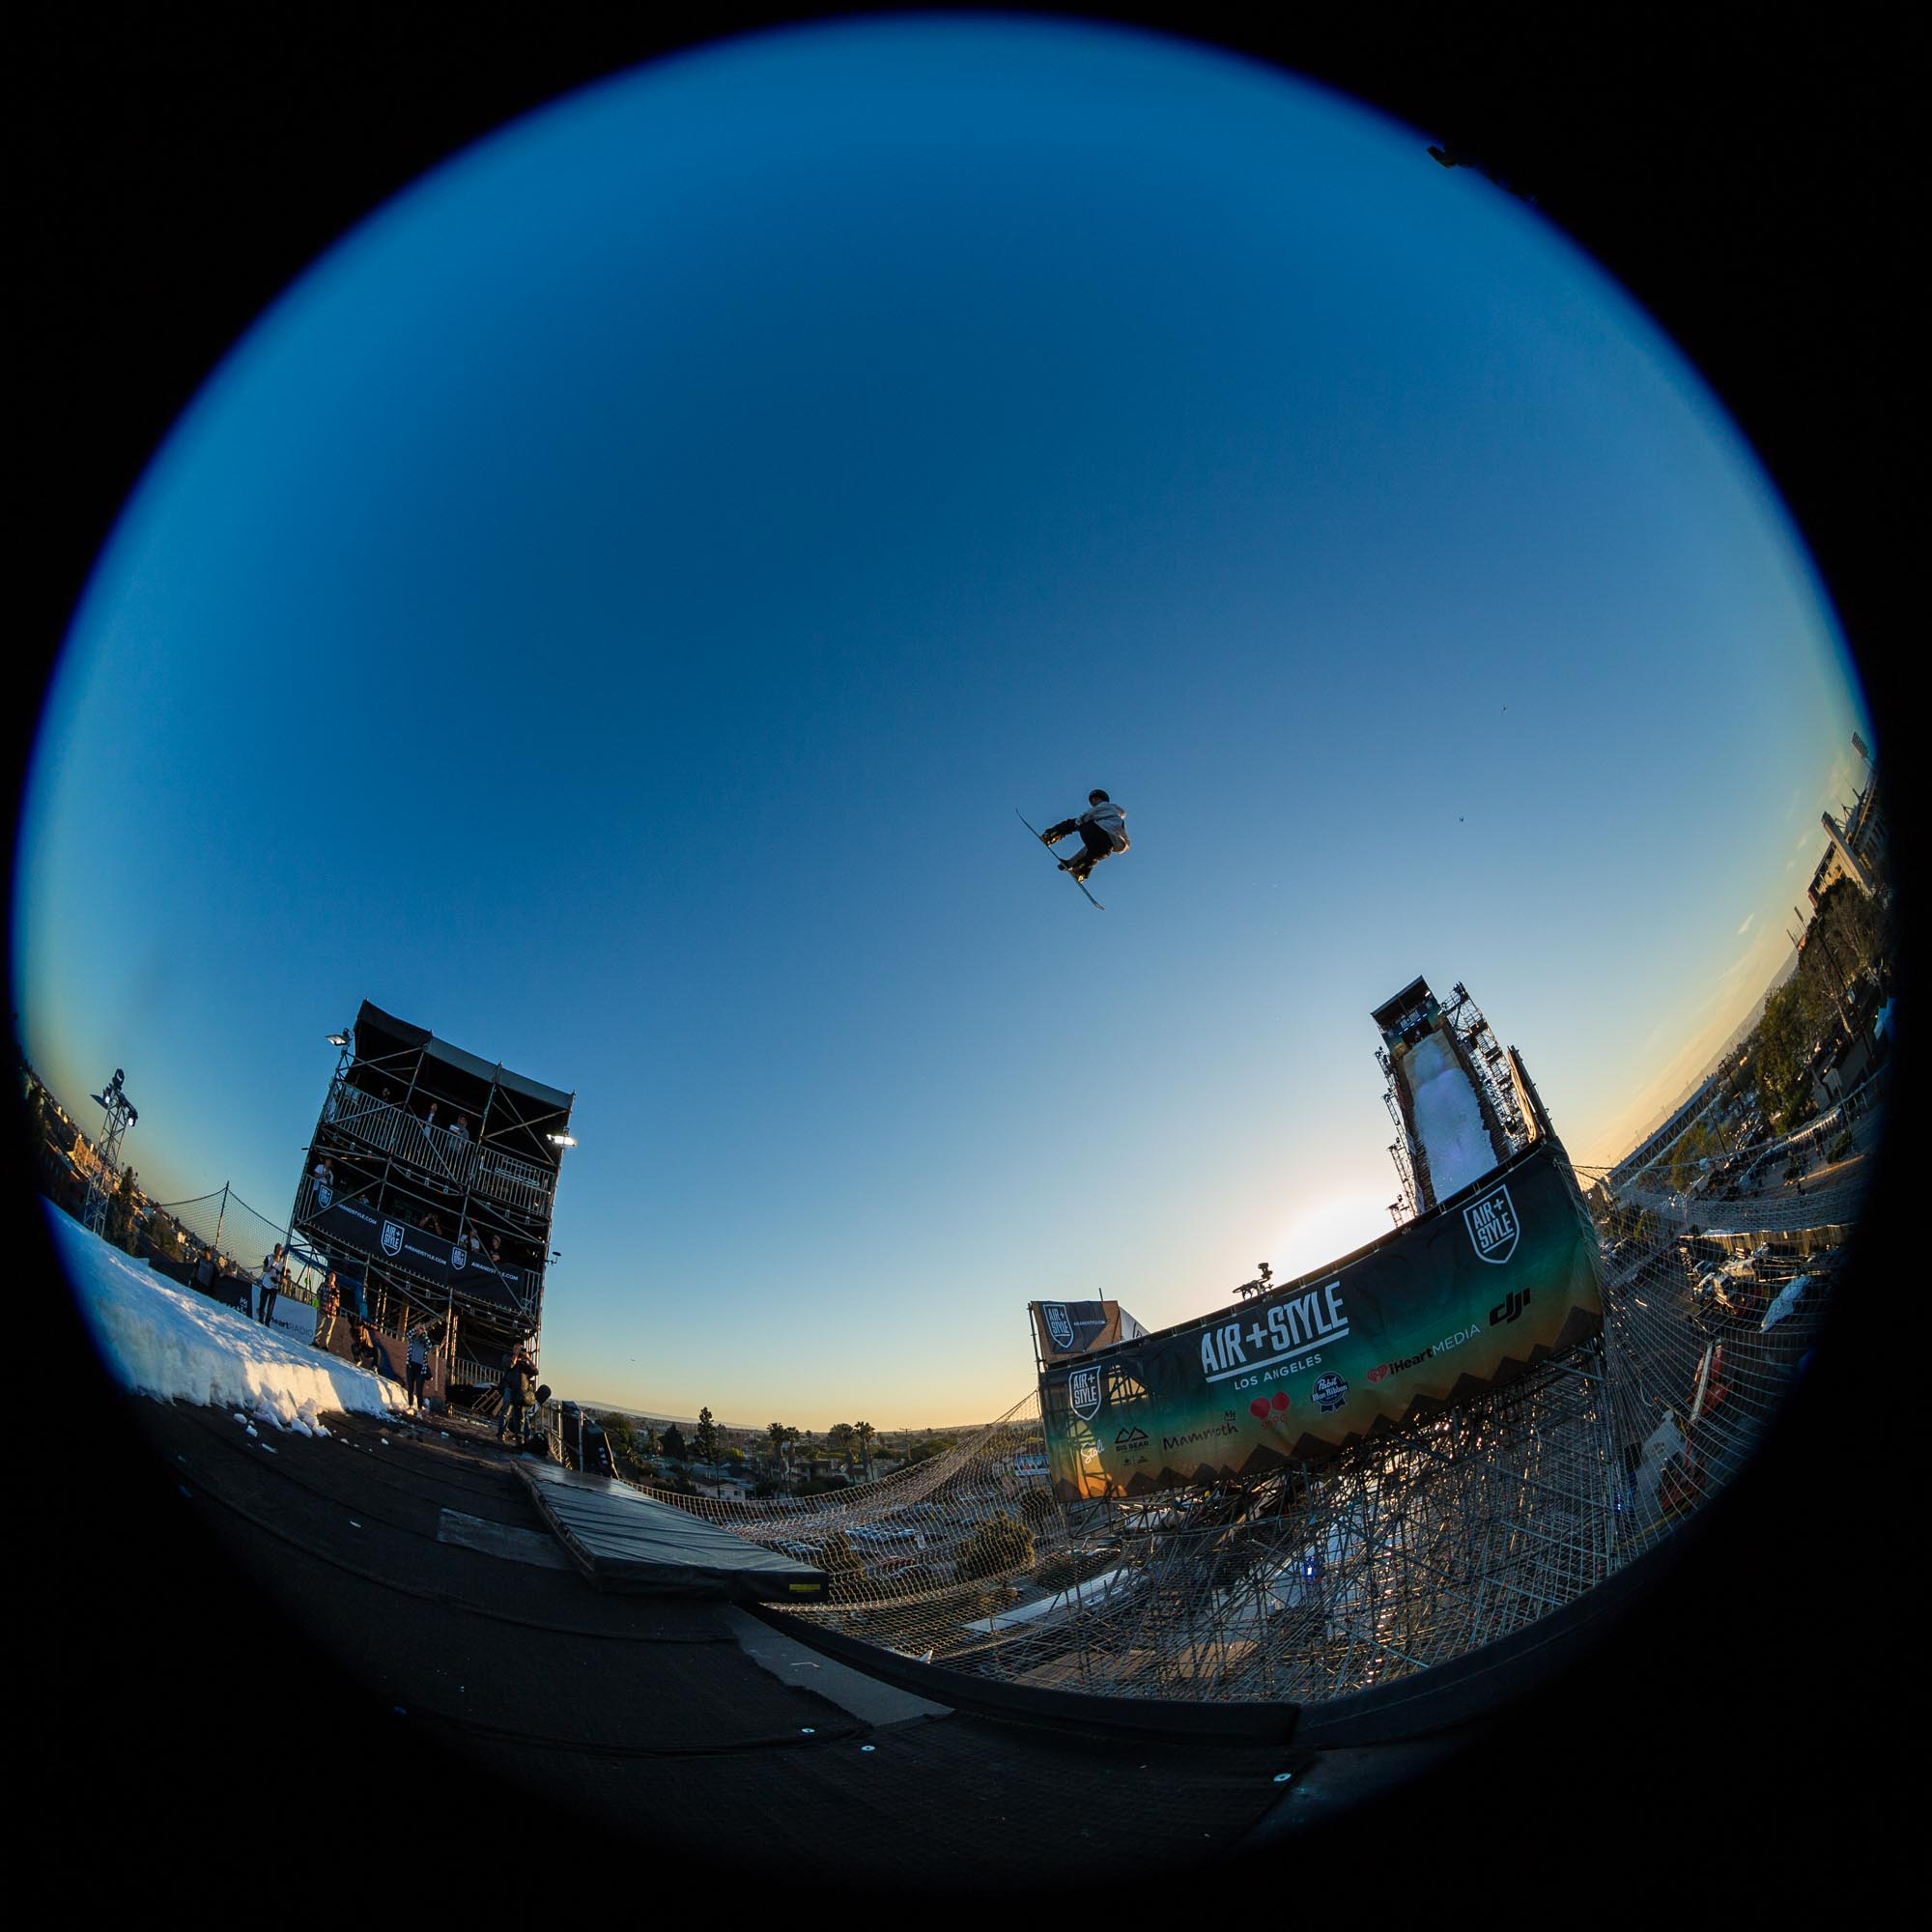 Mathias Weissenbacher competes at Air + Style, held at EXPO Park at the Coliseum in Los Angeles, CA, USA on 20 February, 2016.